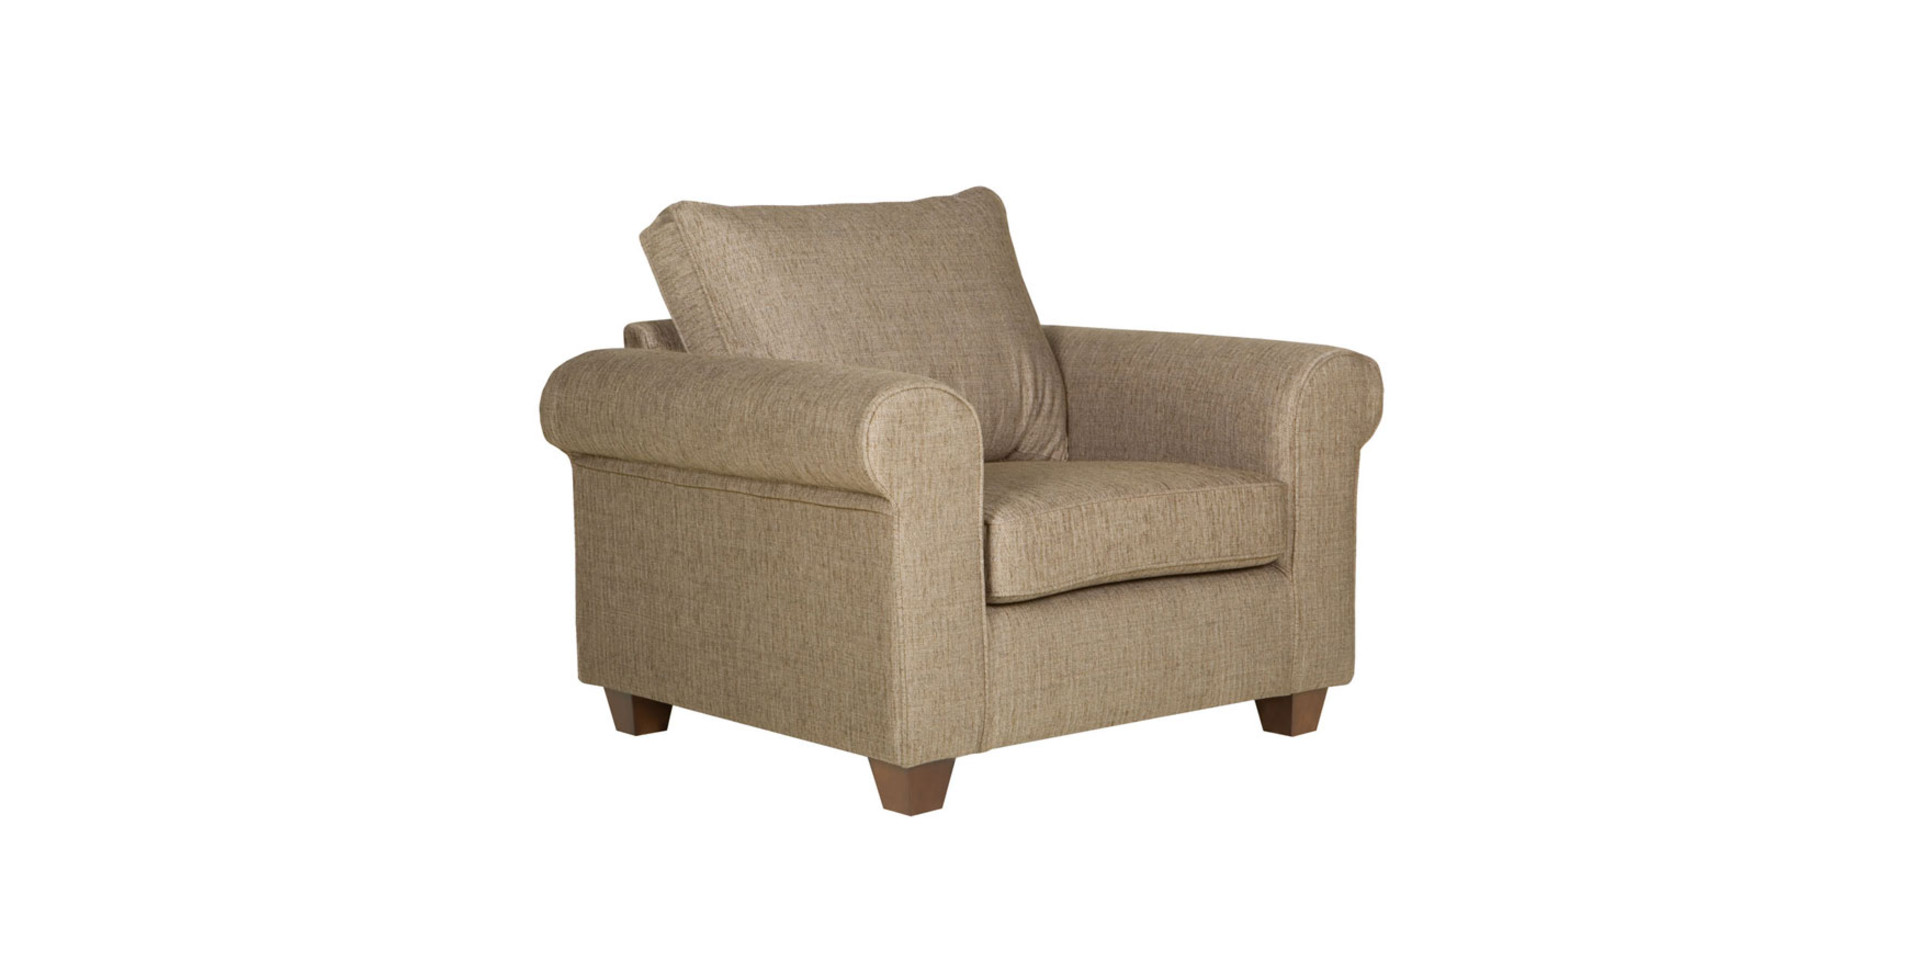 sits-romantic-fauteuil-armchair_veraam4b1_brown_grey_2